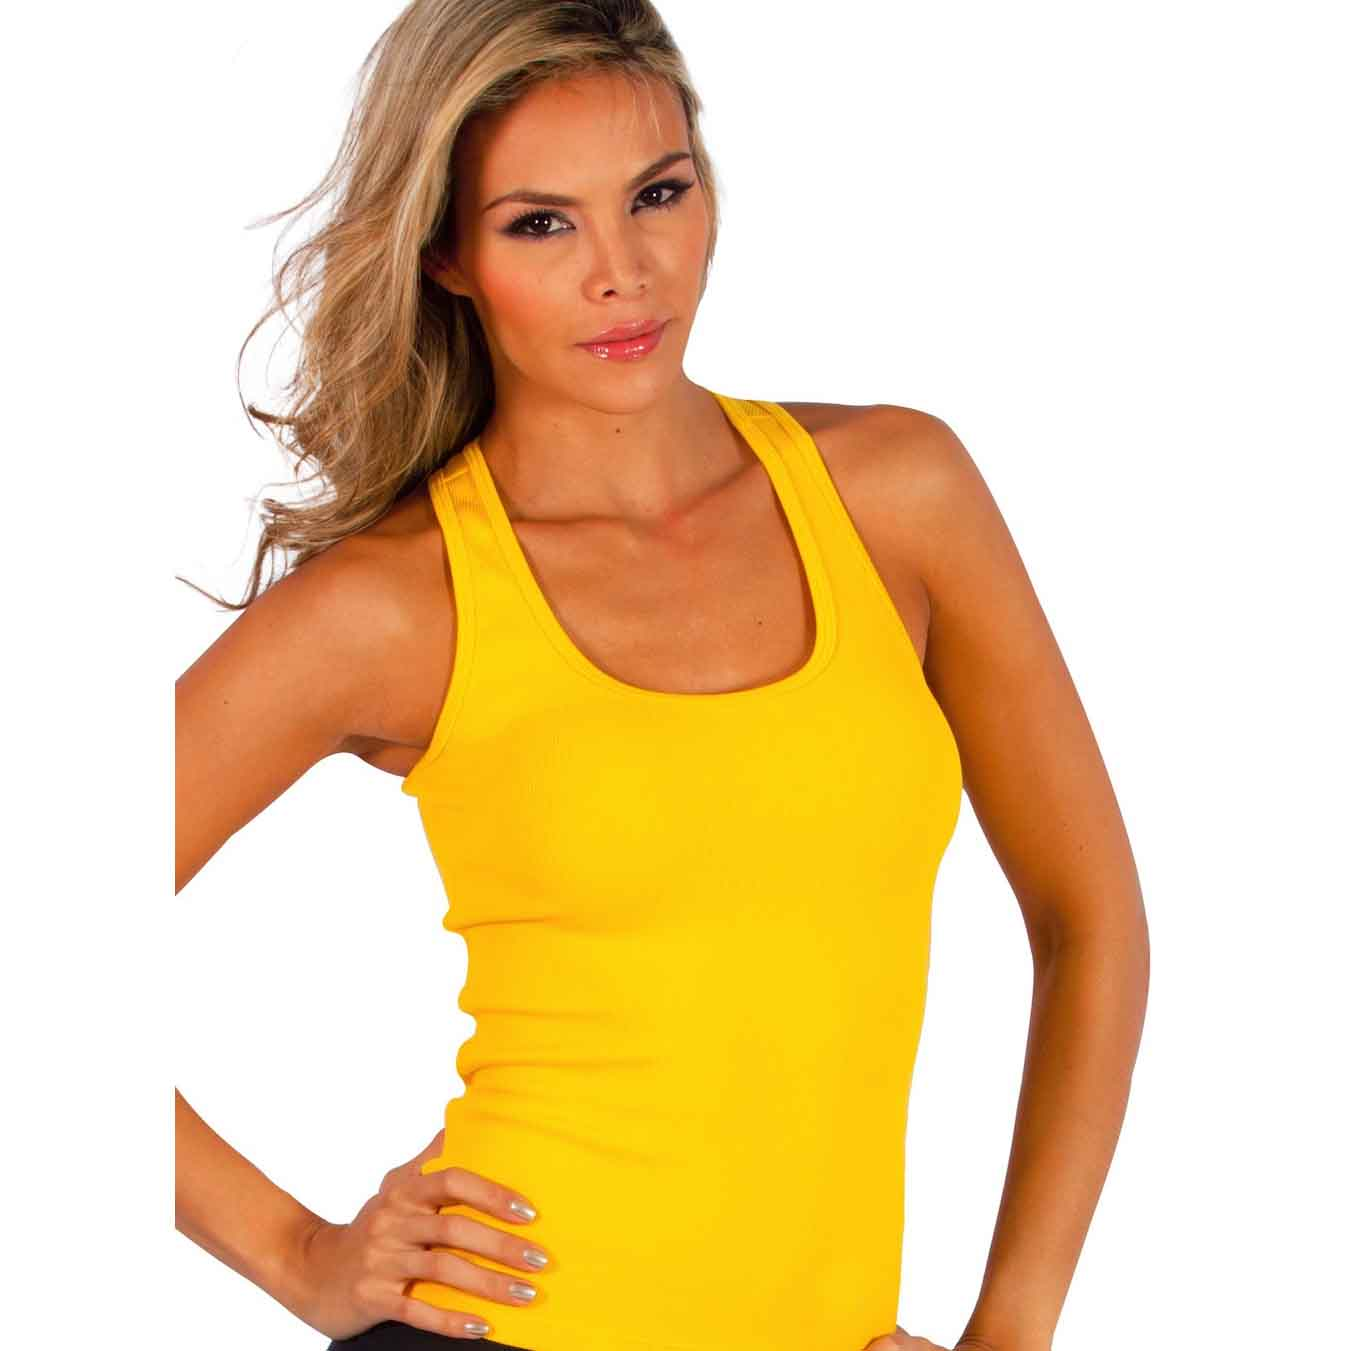 Related: yellow tank top xl yellow crop top yellow camisole yellow tank top small yellow blouse yellow sleeveless top yellow tank top men yellow tank top large. Decree Tank Top Women's Size X-Small Yellow Gold White Floral Elastic Back. Decree · Size (Women's):XS. $ or .